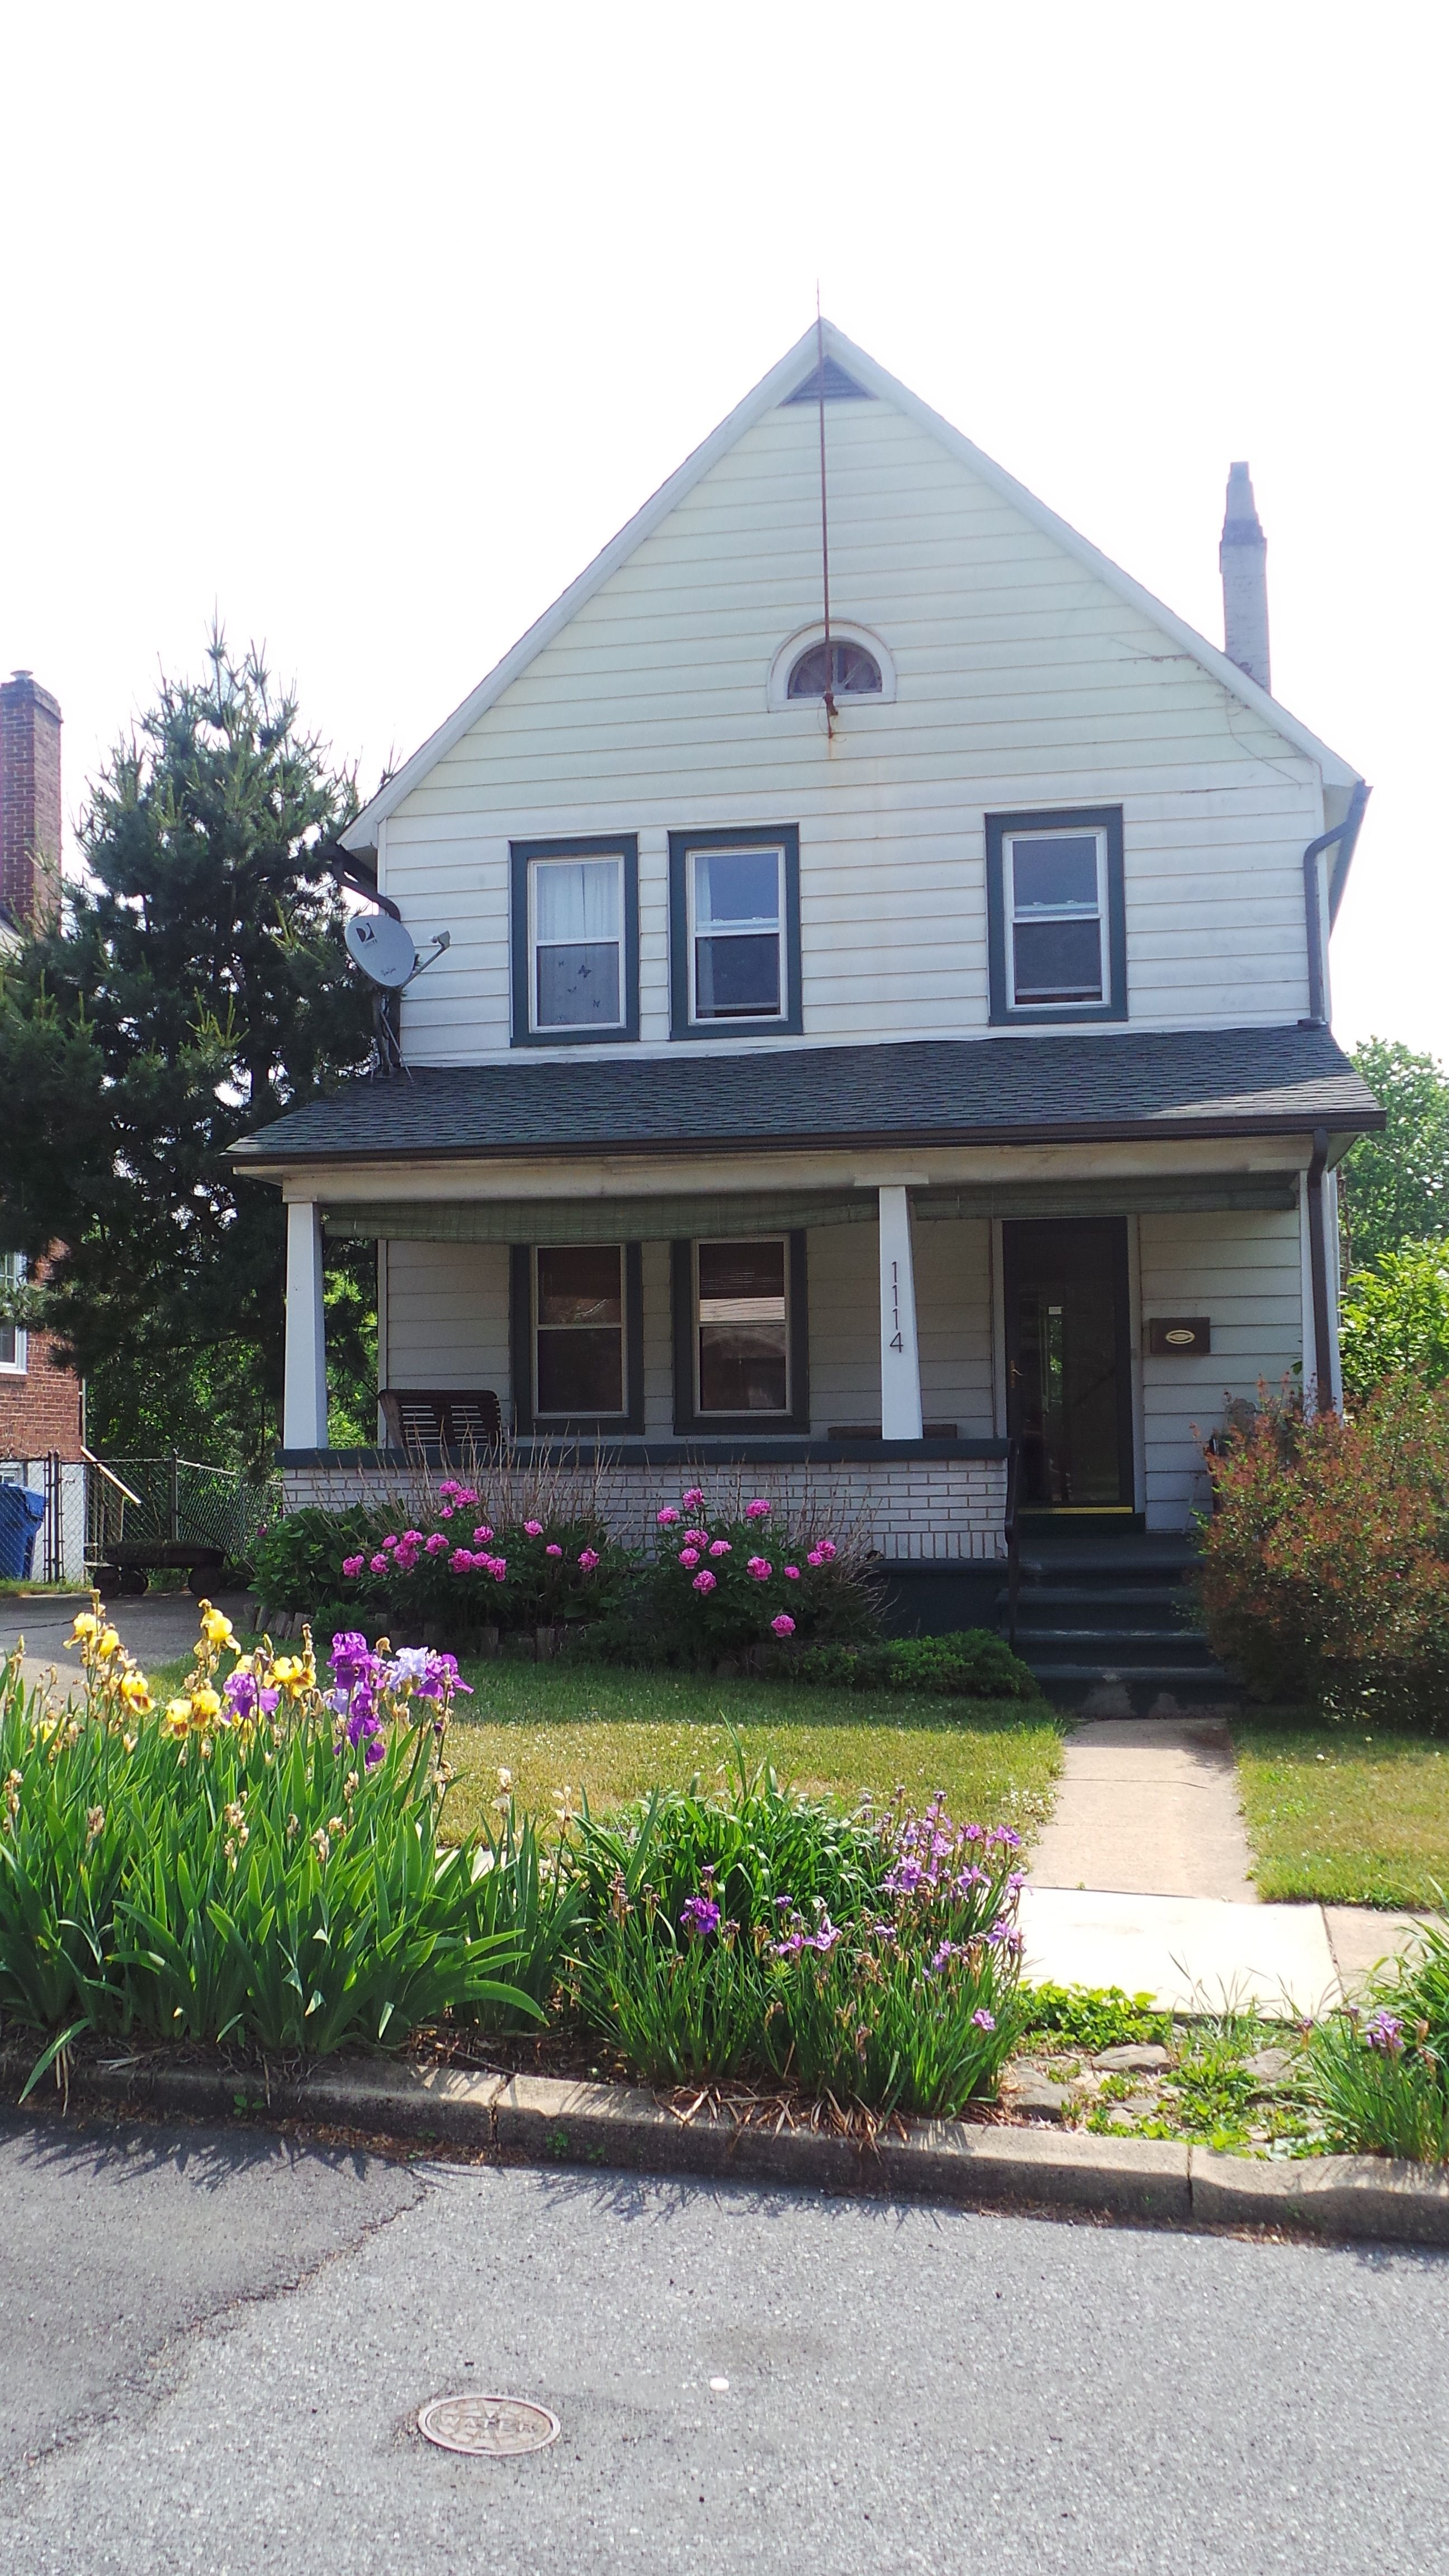 1114 Arcadia St Bethlehem Pa For Sale Powered By Postlets Colonial House Property Management Property